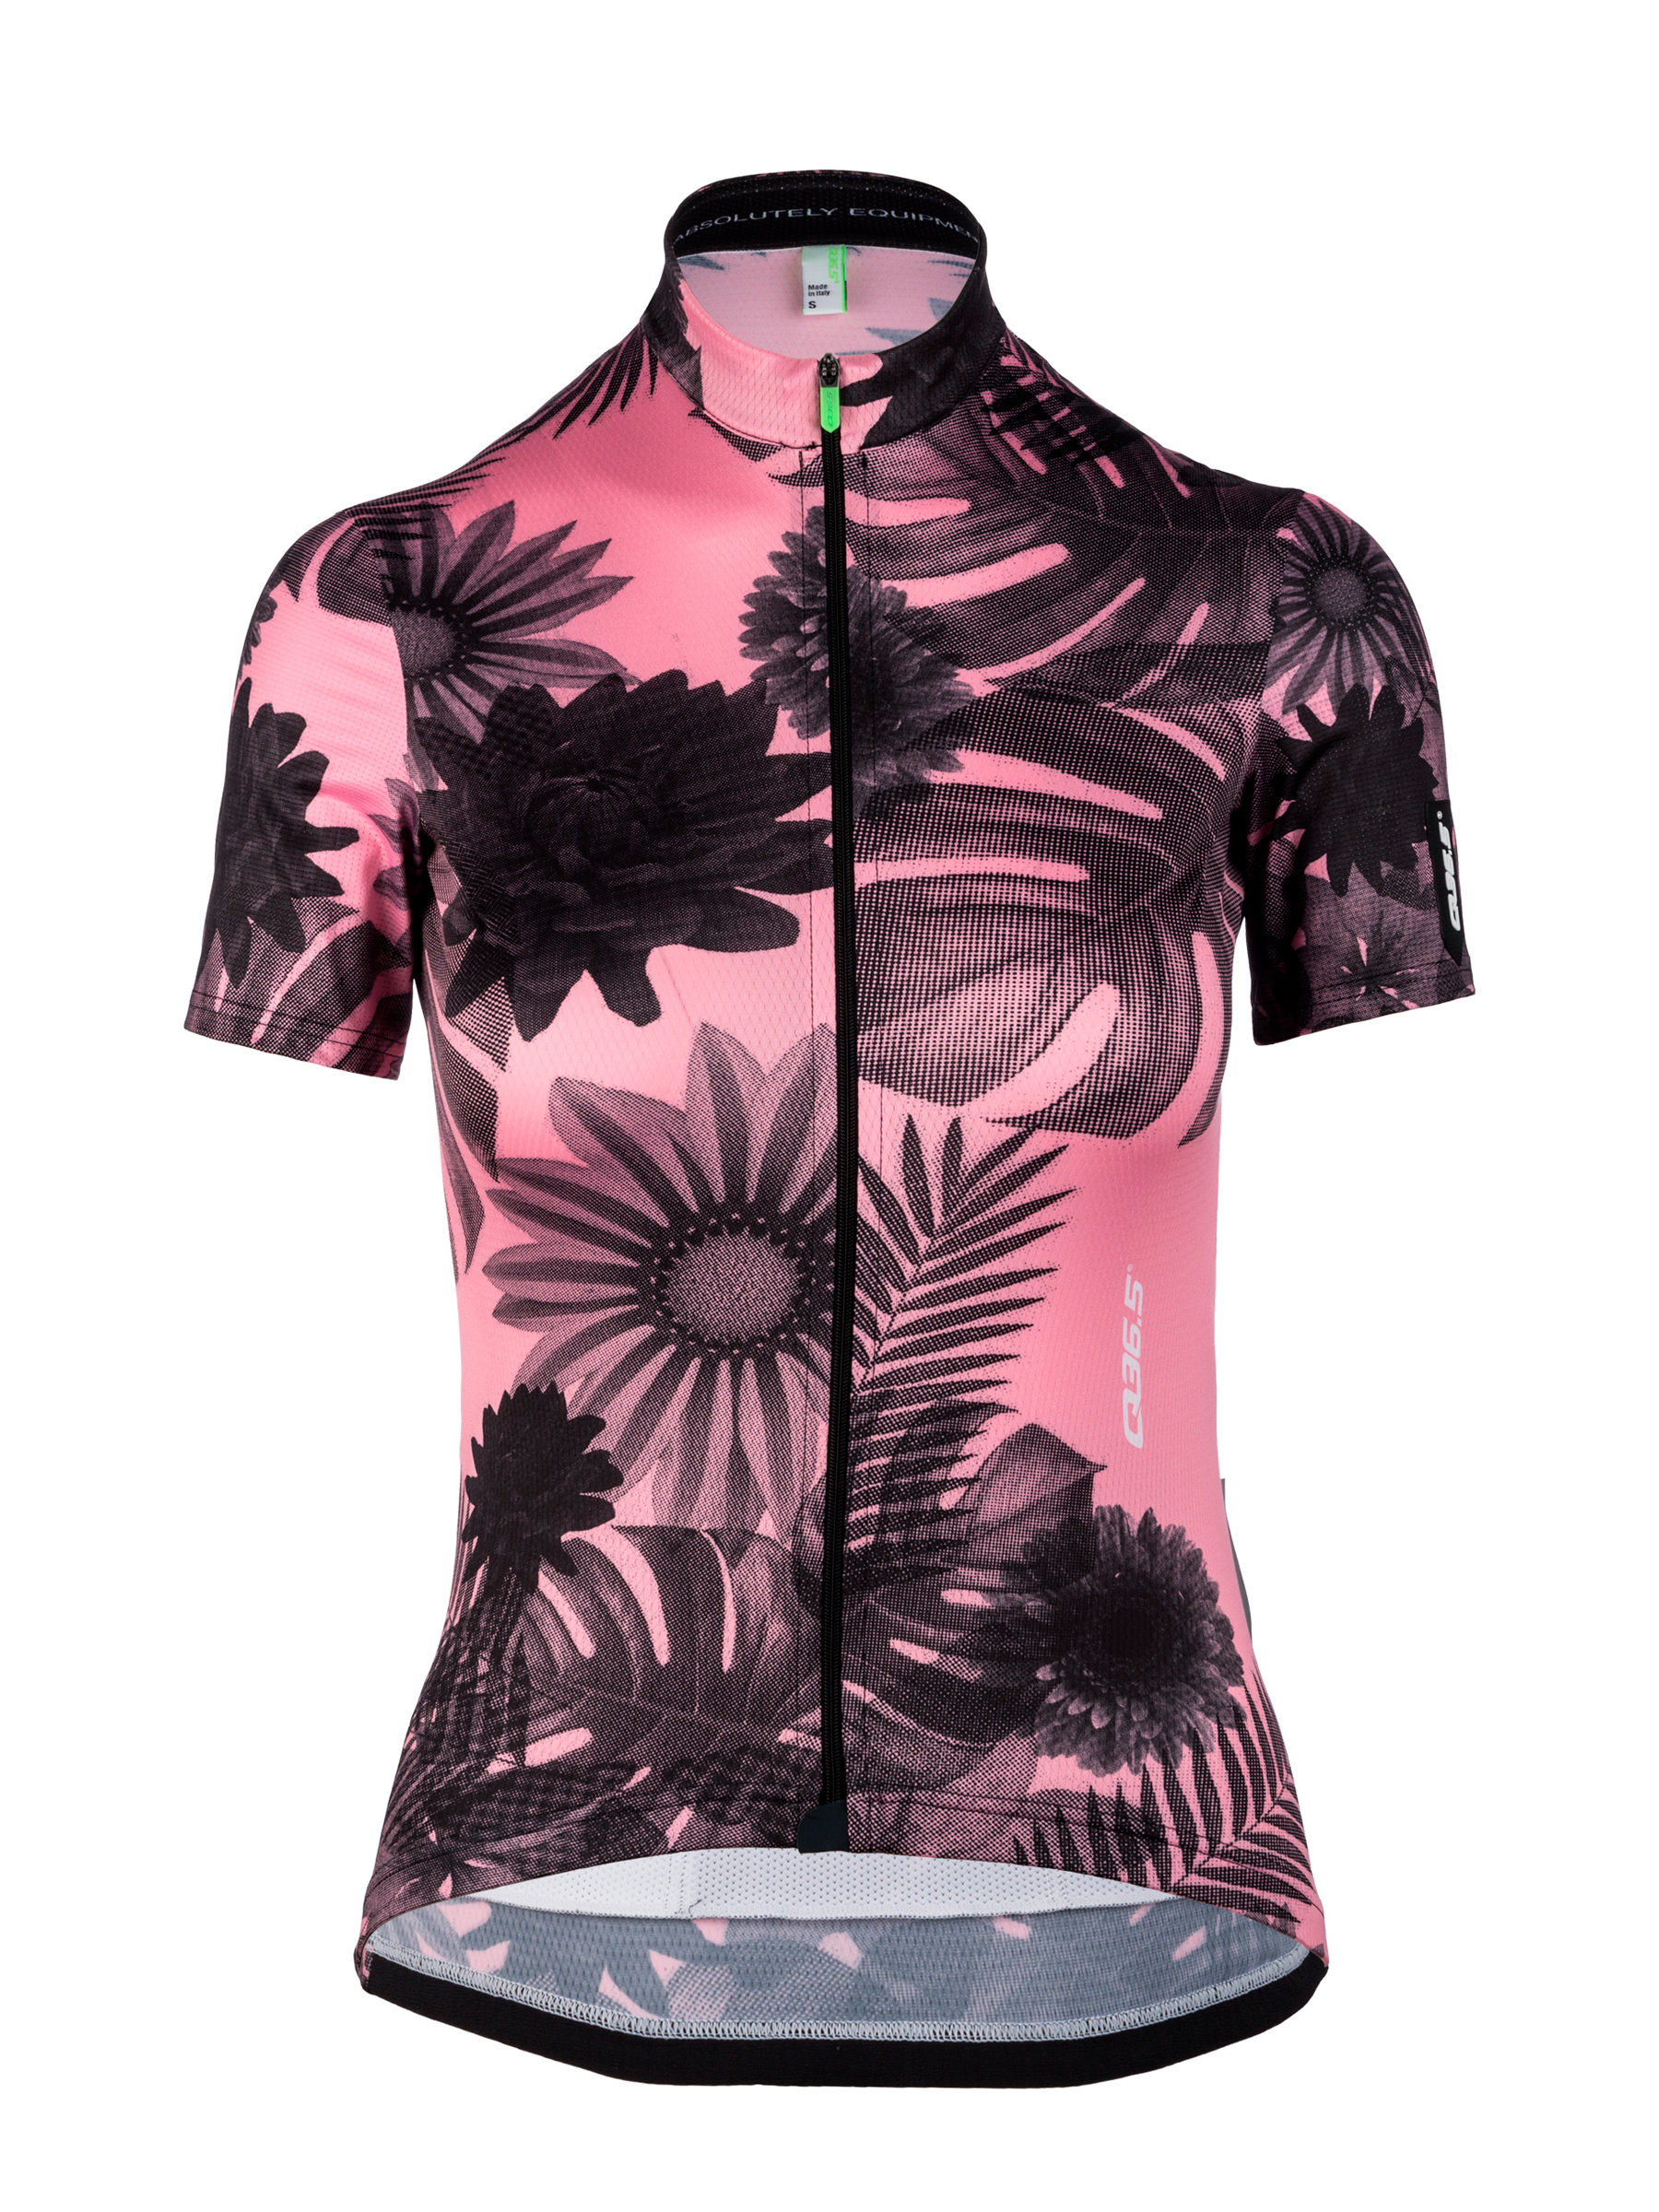 Womens cycling graphic Jersey short sleeve G1 Lady Tropical Pink Q36.5